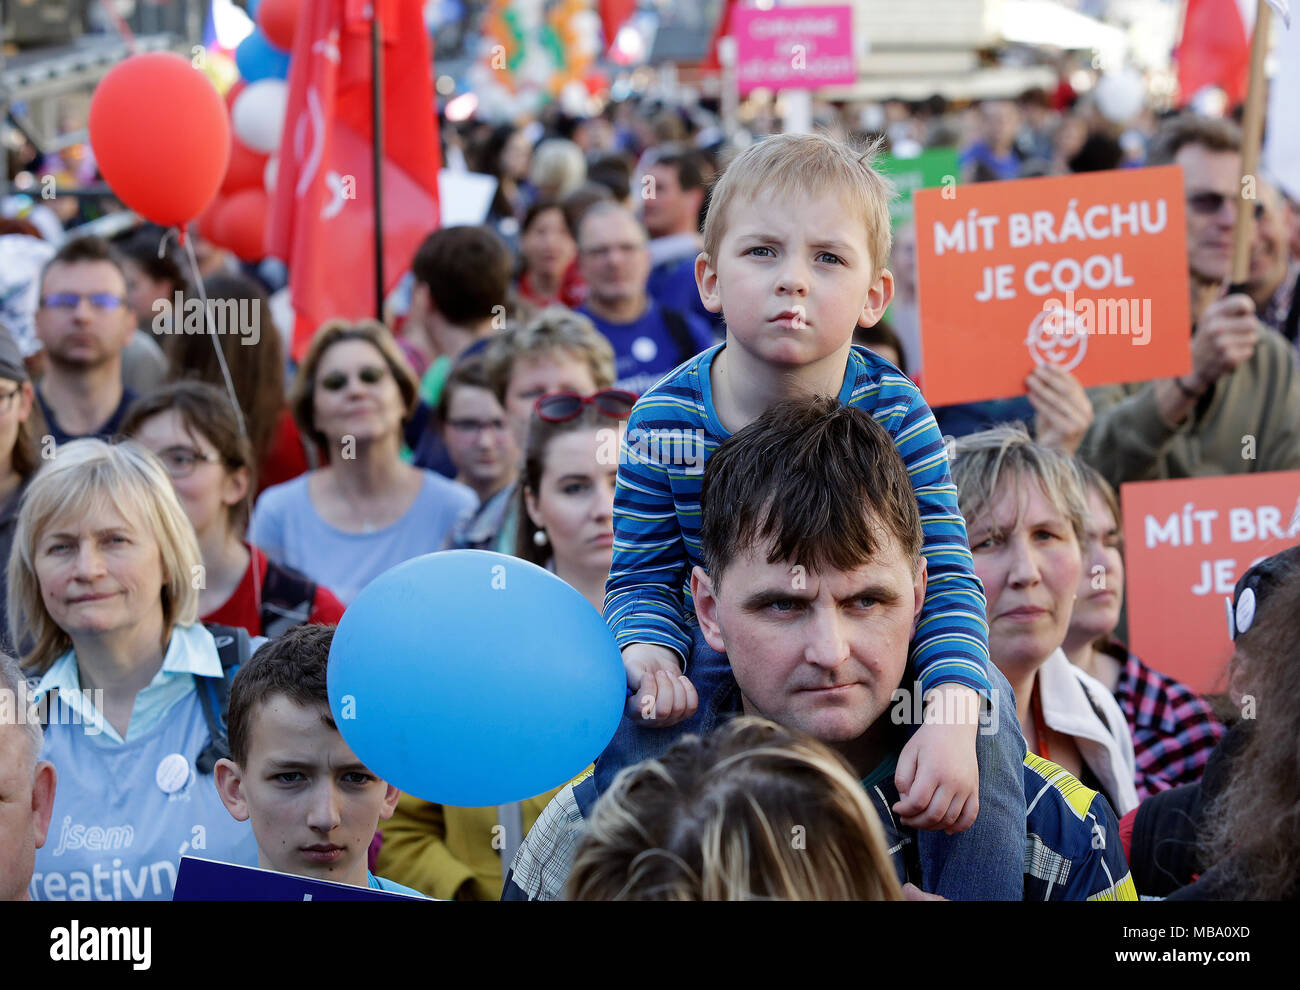 Prague, Czech Republic. 07th Apr, 2018. Several thousand people took part in a procession with Czech flags, big white crosses and banners that protested against abortions in the centre of Prague and called for more support for marriage and families with more children, in Prague, Czech Republic, on April 7, 2018. Credit: Michaela Rihova/CTK Photo/Alamy Live News Stock Photo